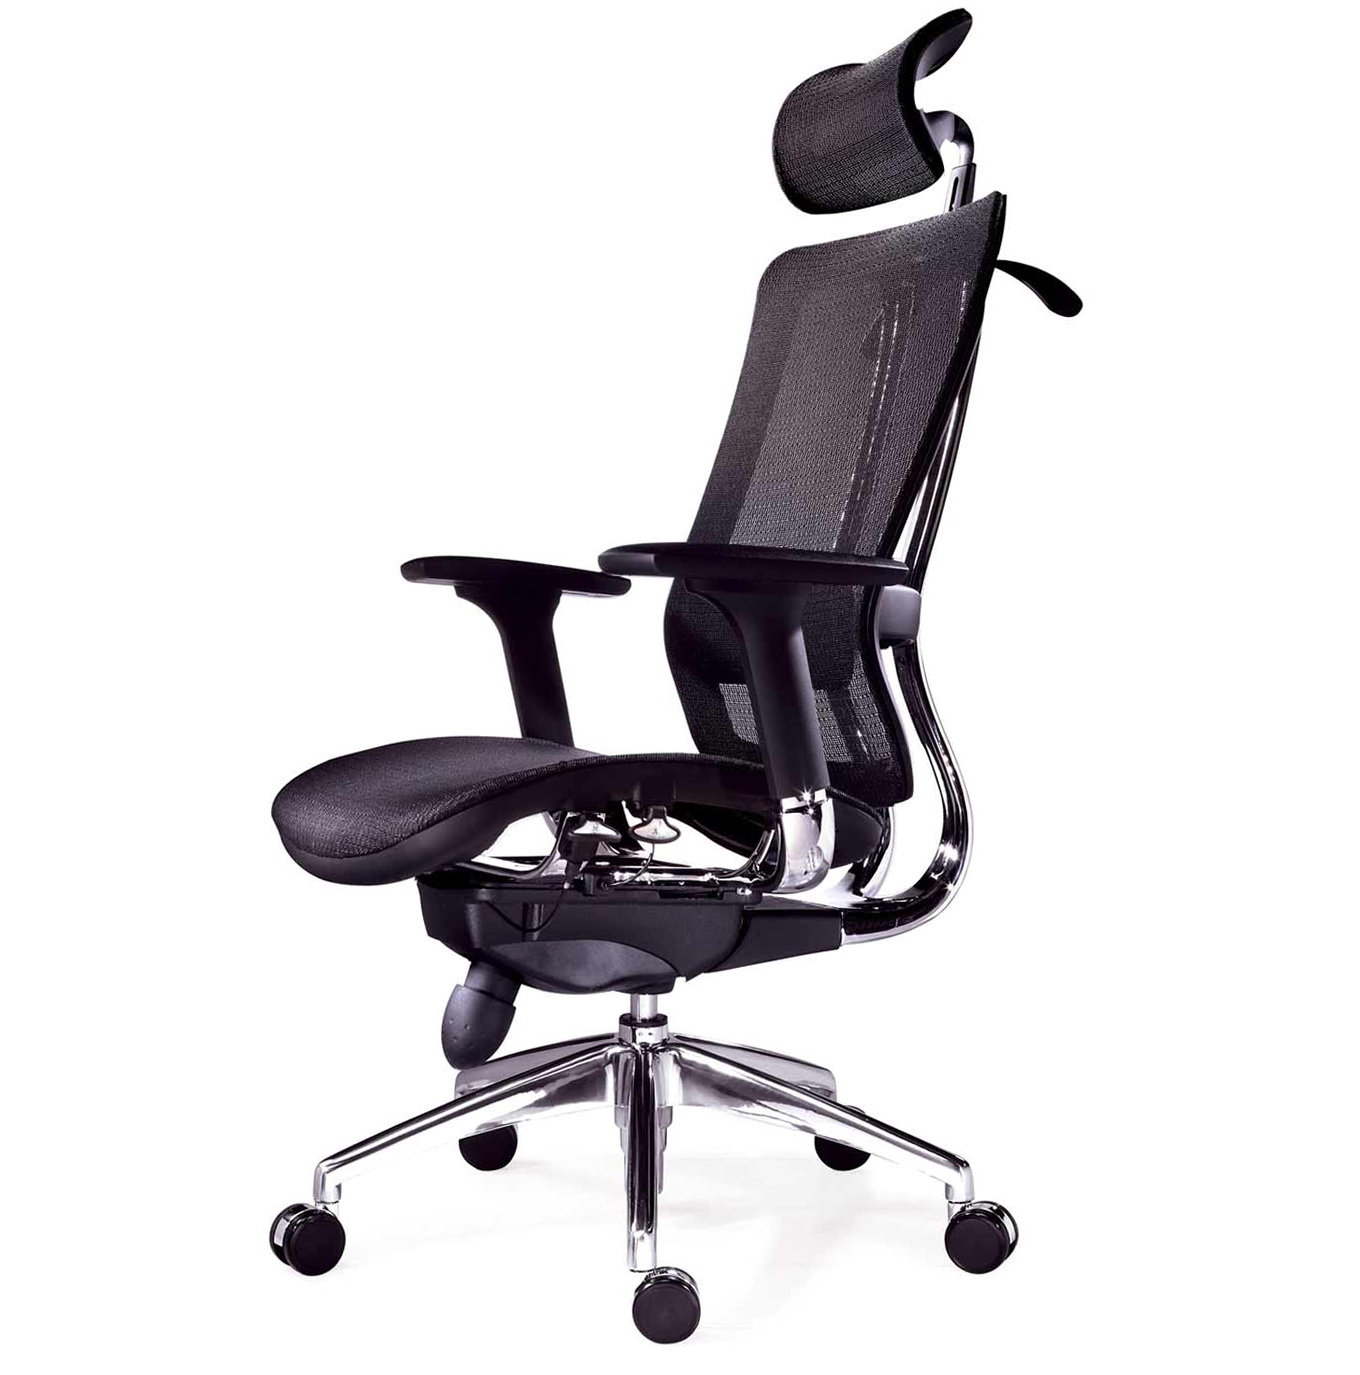 Office Chair Reviews 2012